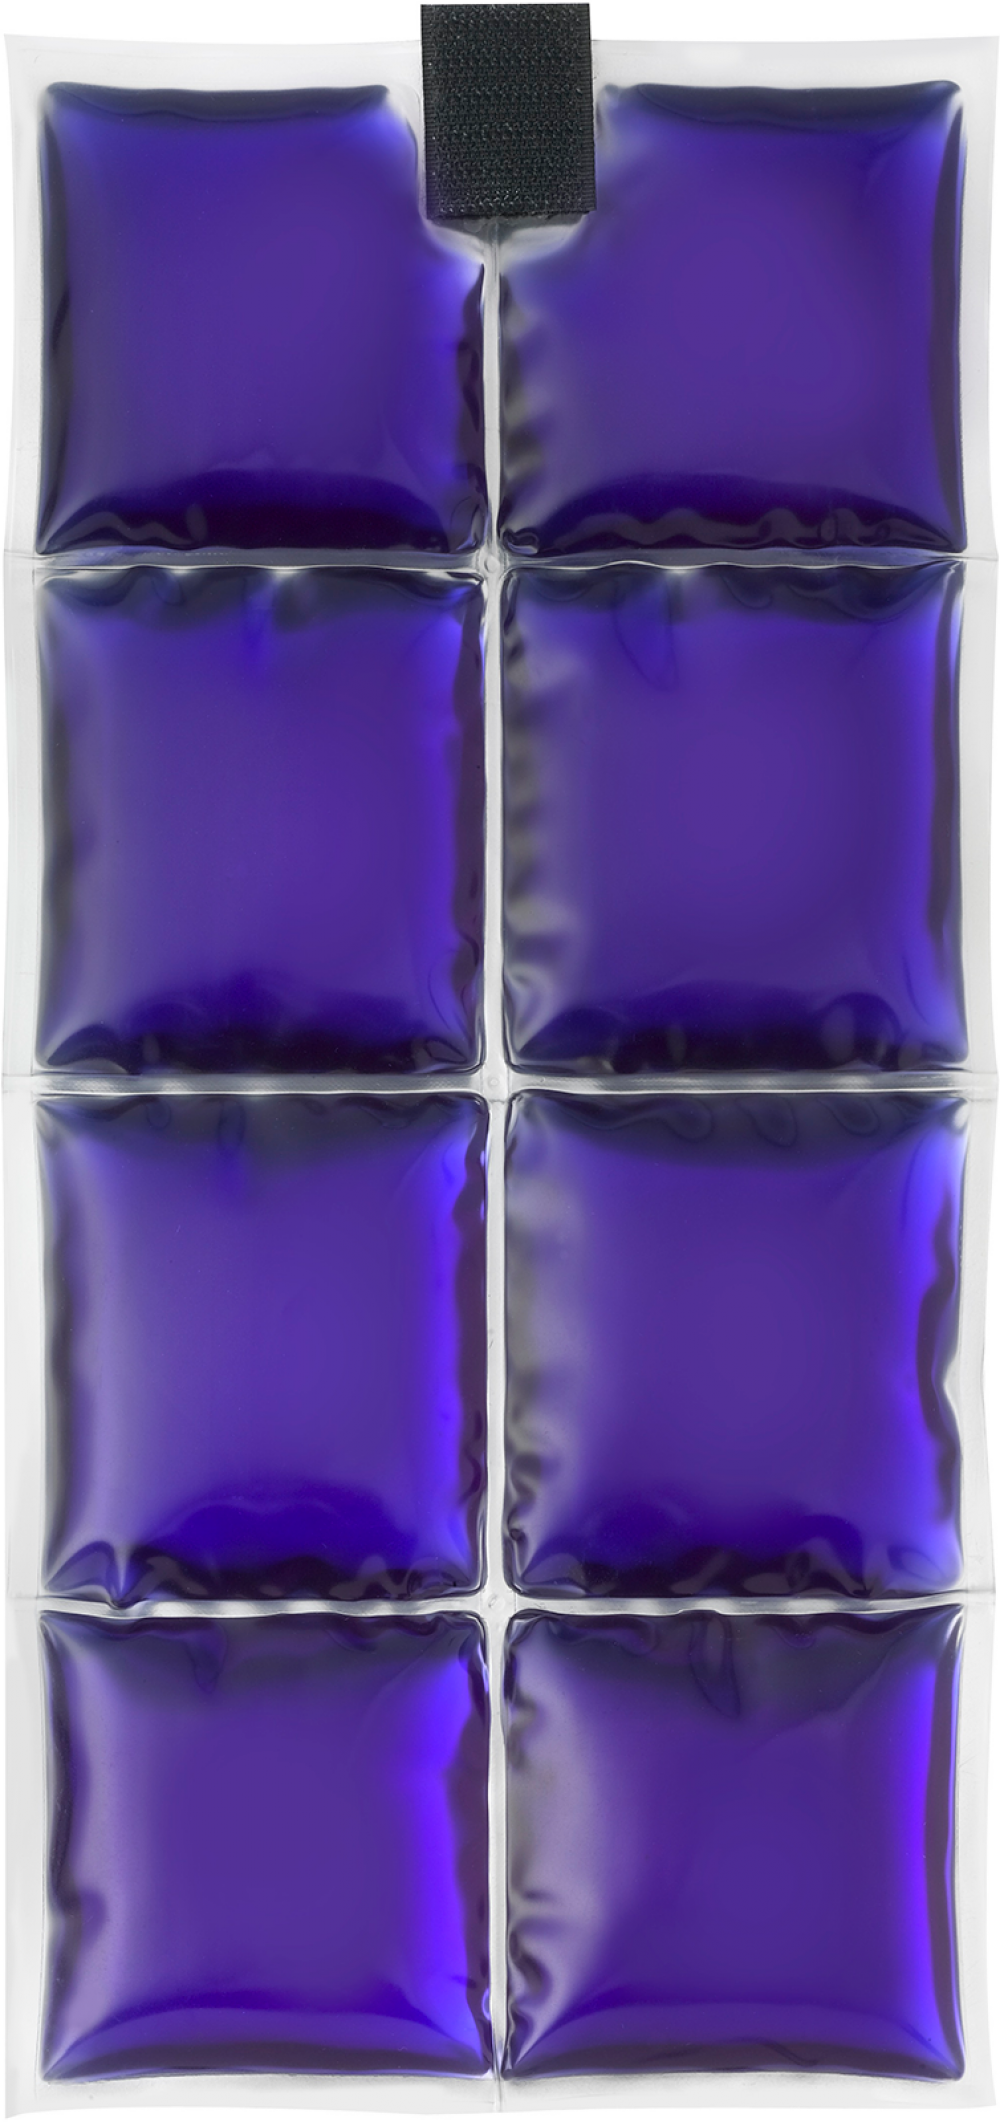 Coolpac 15˚C / 59˚F - 8 cells Violet (set of 4 units)